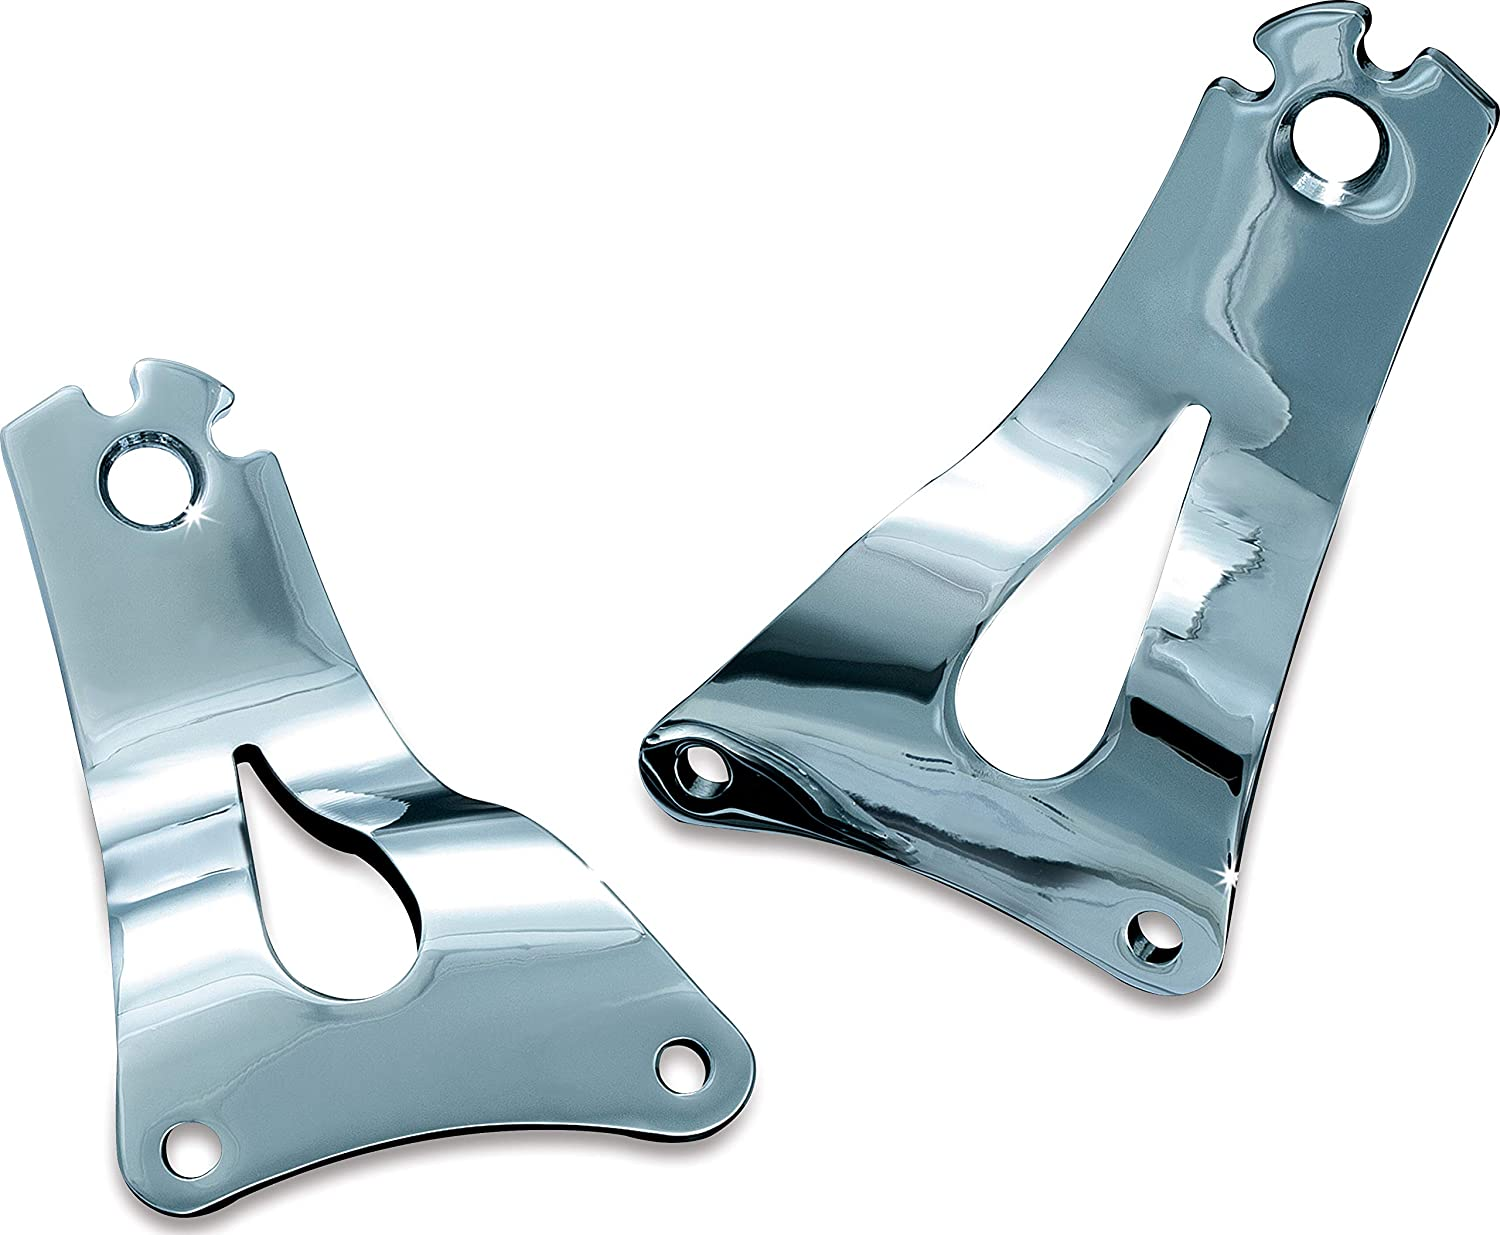 1 Pair Chrome Quick Release Mounts for 2014-19 Harley-Davidson Touring Motorcycles Kuryakyn 7093 Multi-Purpose Driver//Passenger Seat Backrest Component